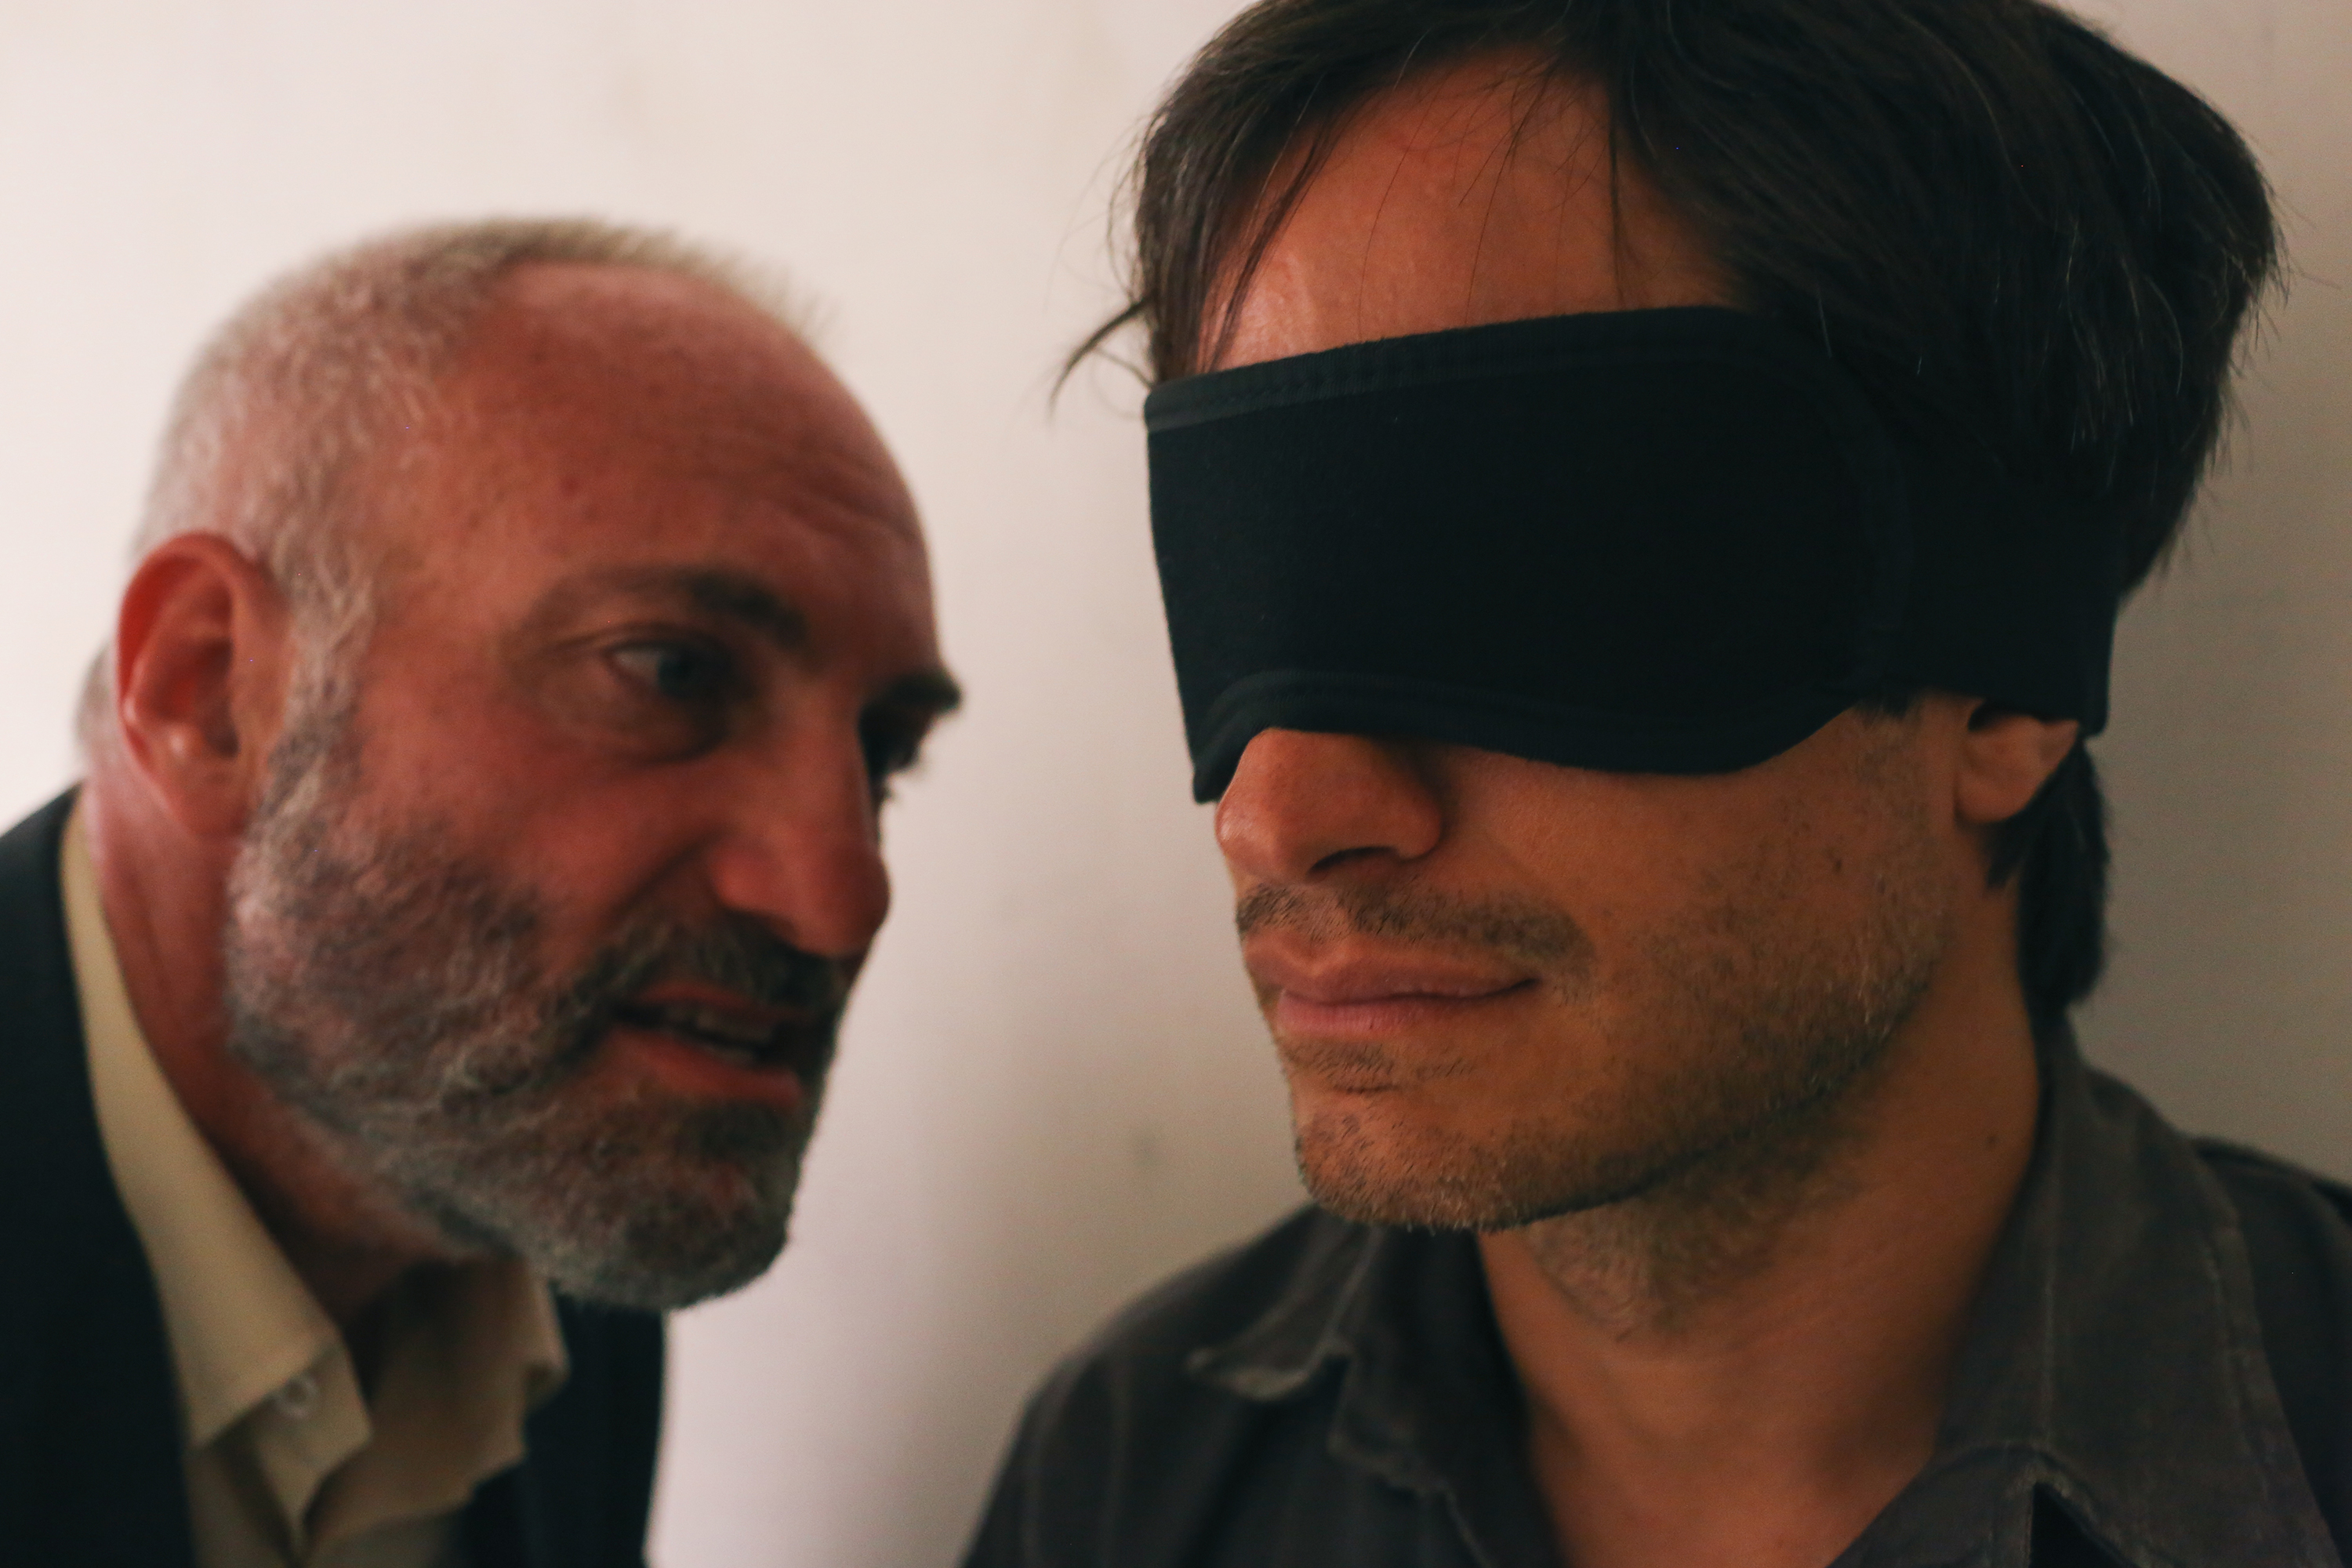 As Rosewater (Kim Bodnia, L) hammers away at the blindfolded Bahari (Gael Garcia Bernal), the question becomes: Who's really in the dark here? (Photo by Nasser Kalaji, courtesy of Open Road Films.)